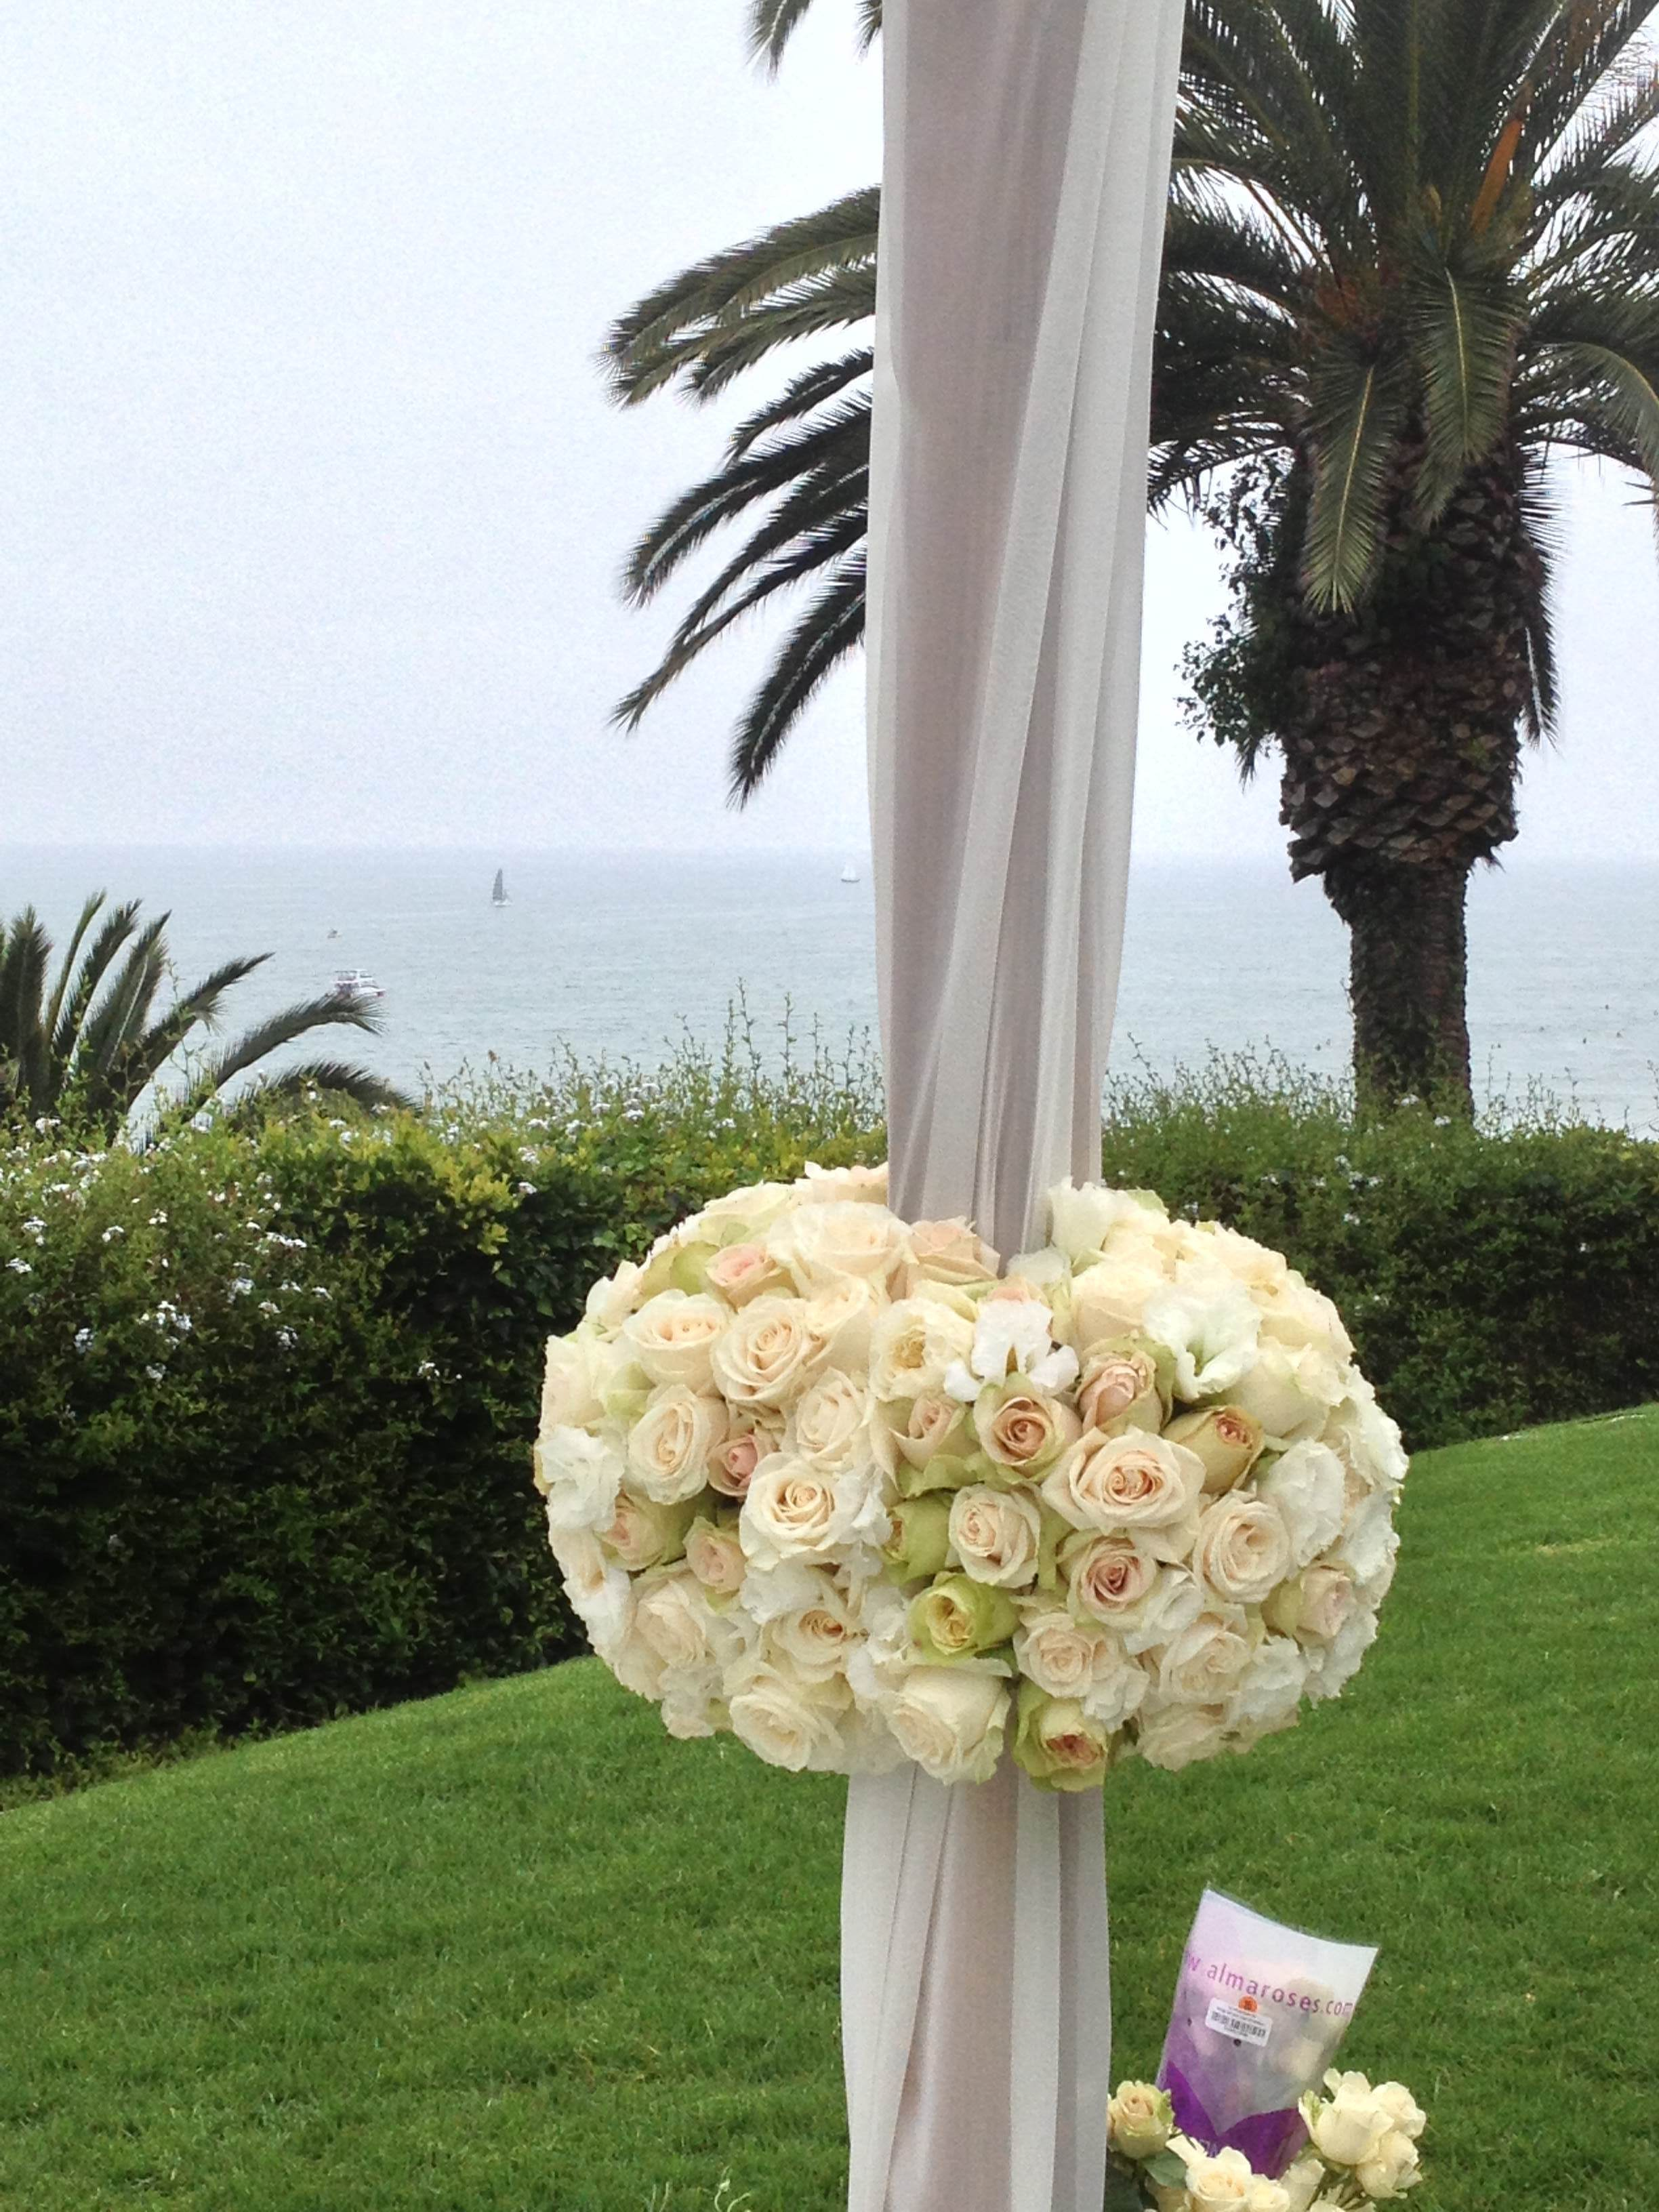 A close up view of the floral tie backs attached to the Chuppah.